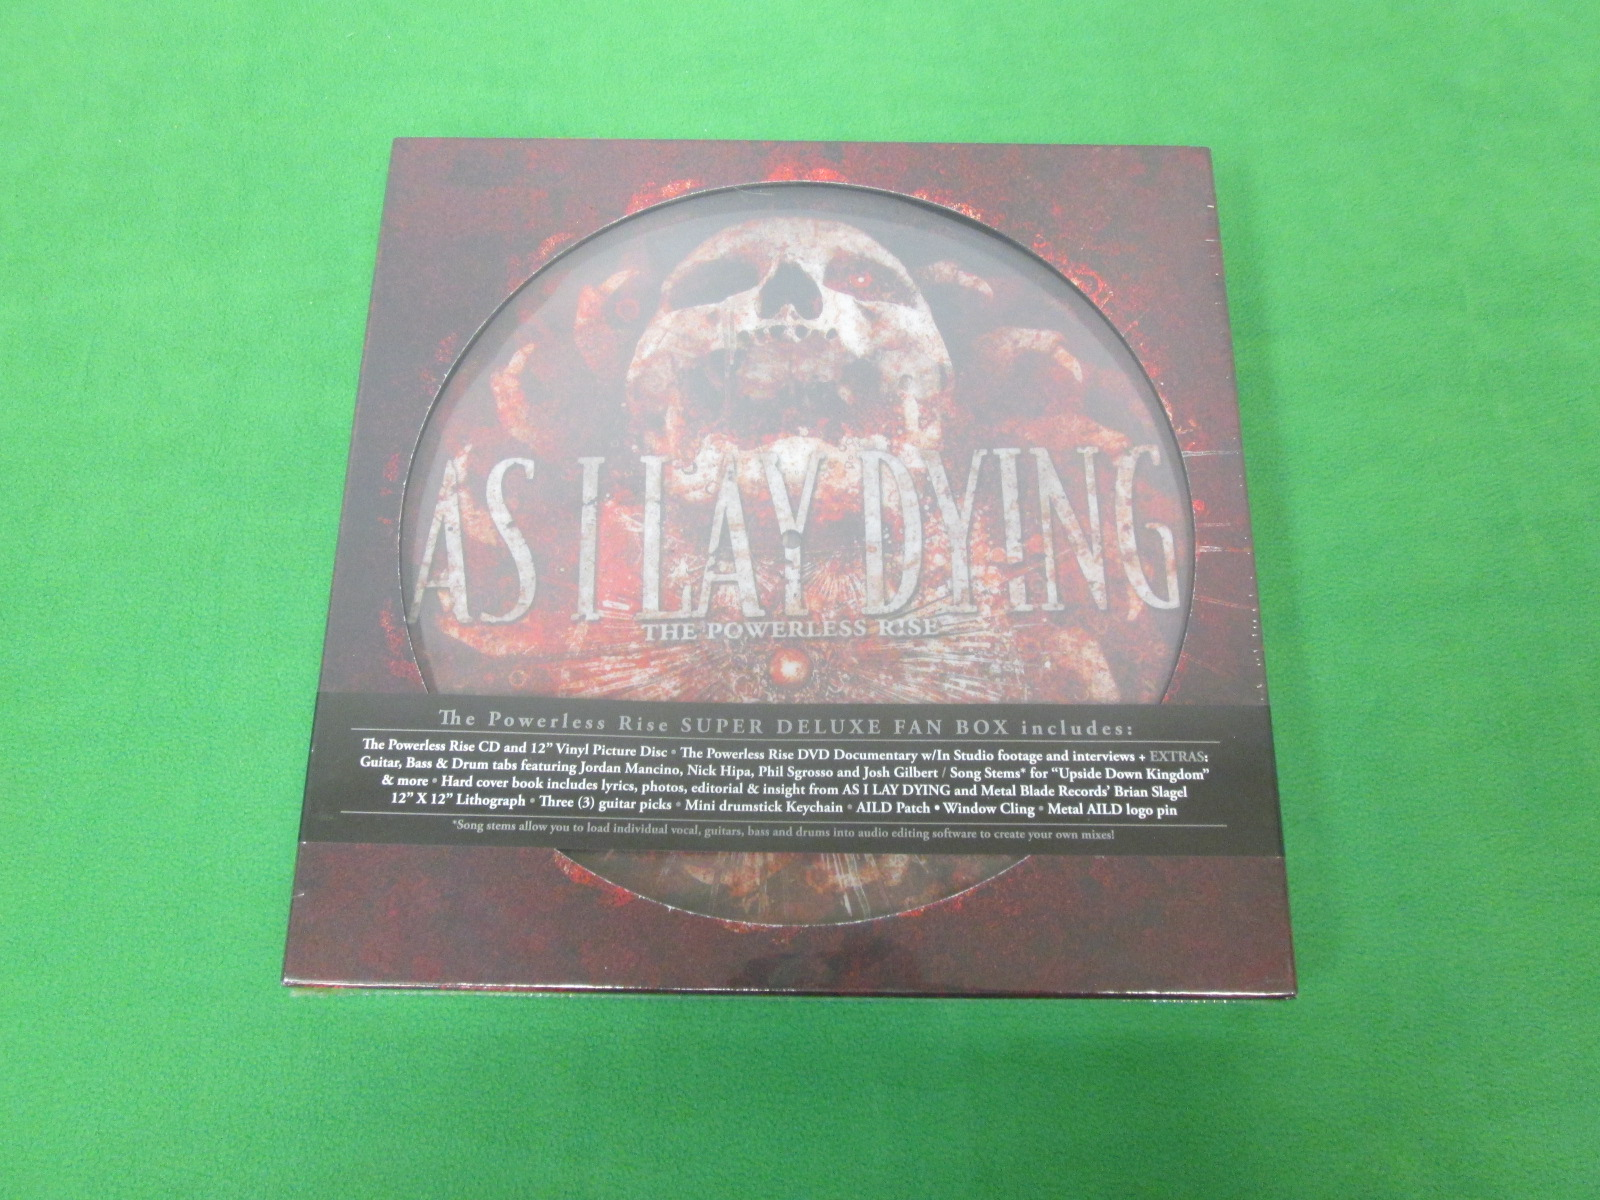 Powerless Rise By As I Lay Dying On Audio CD